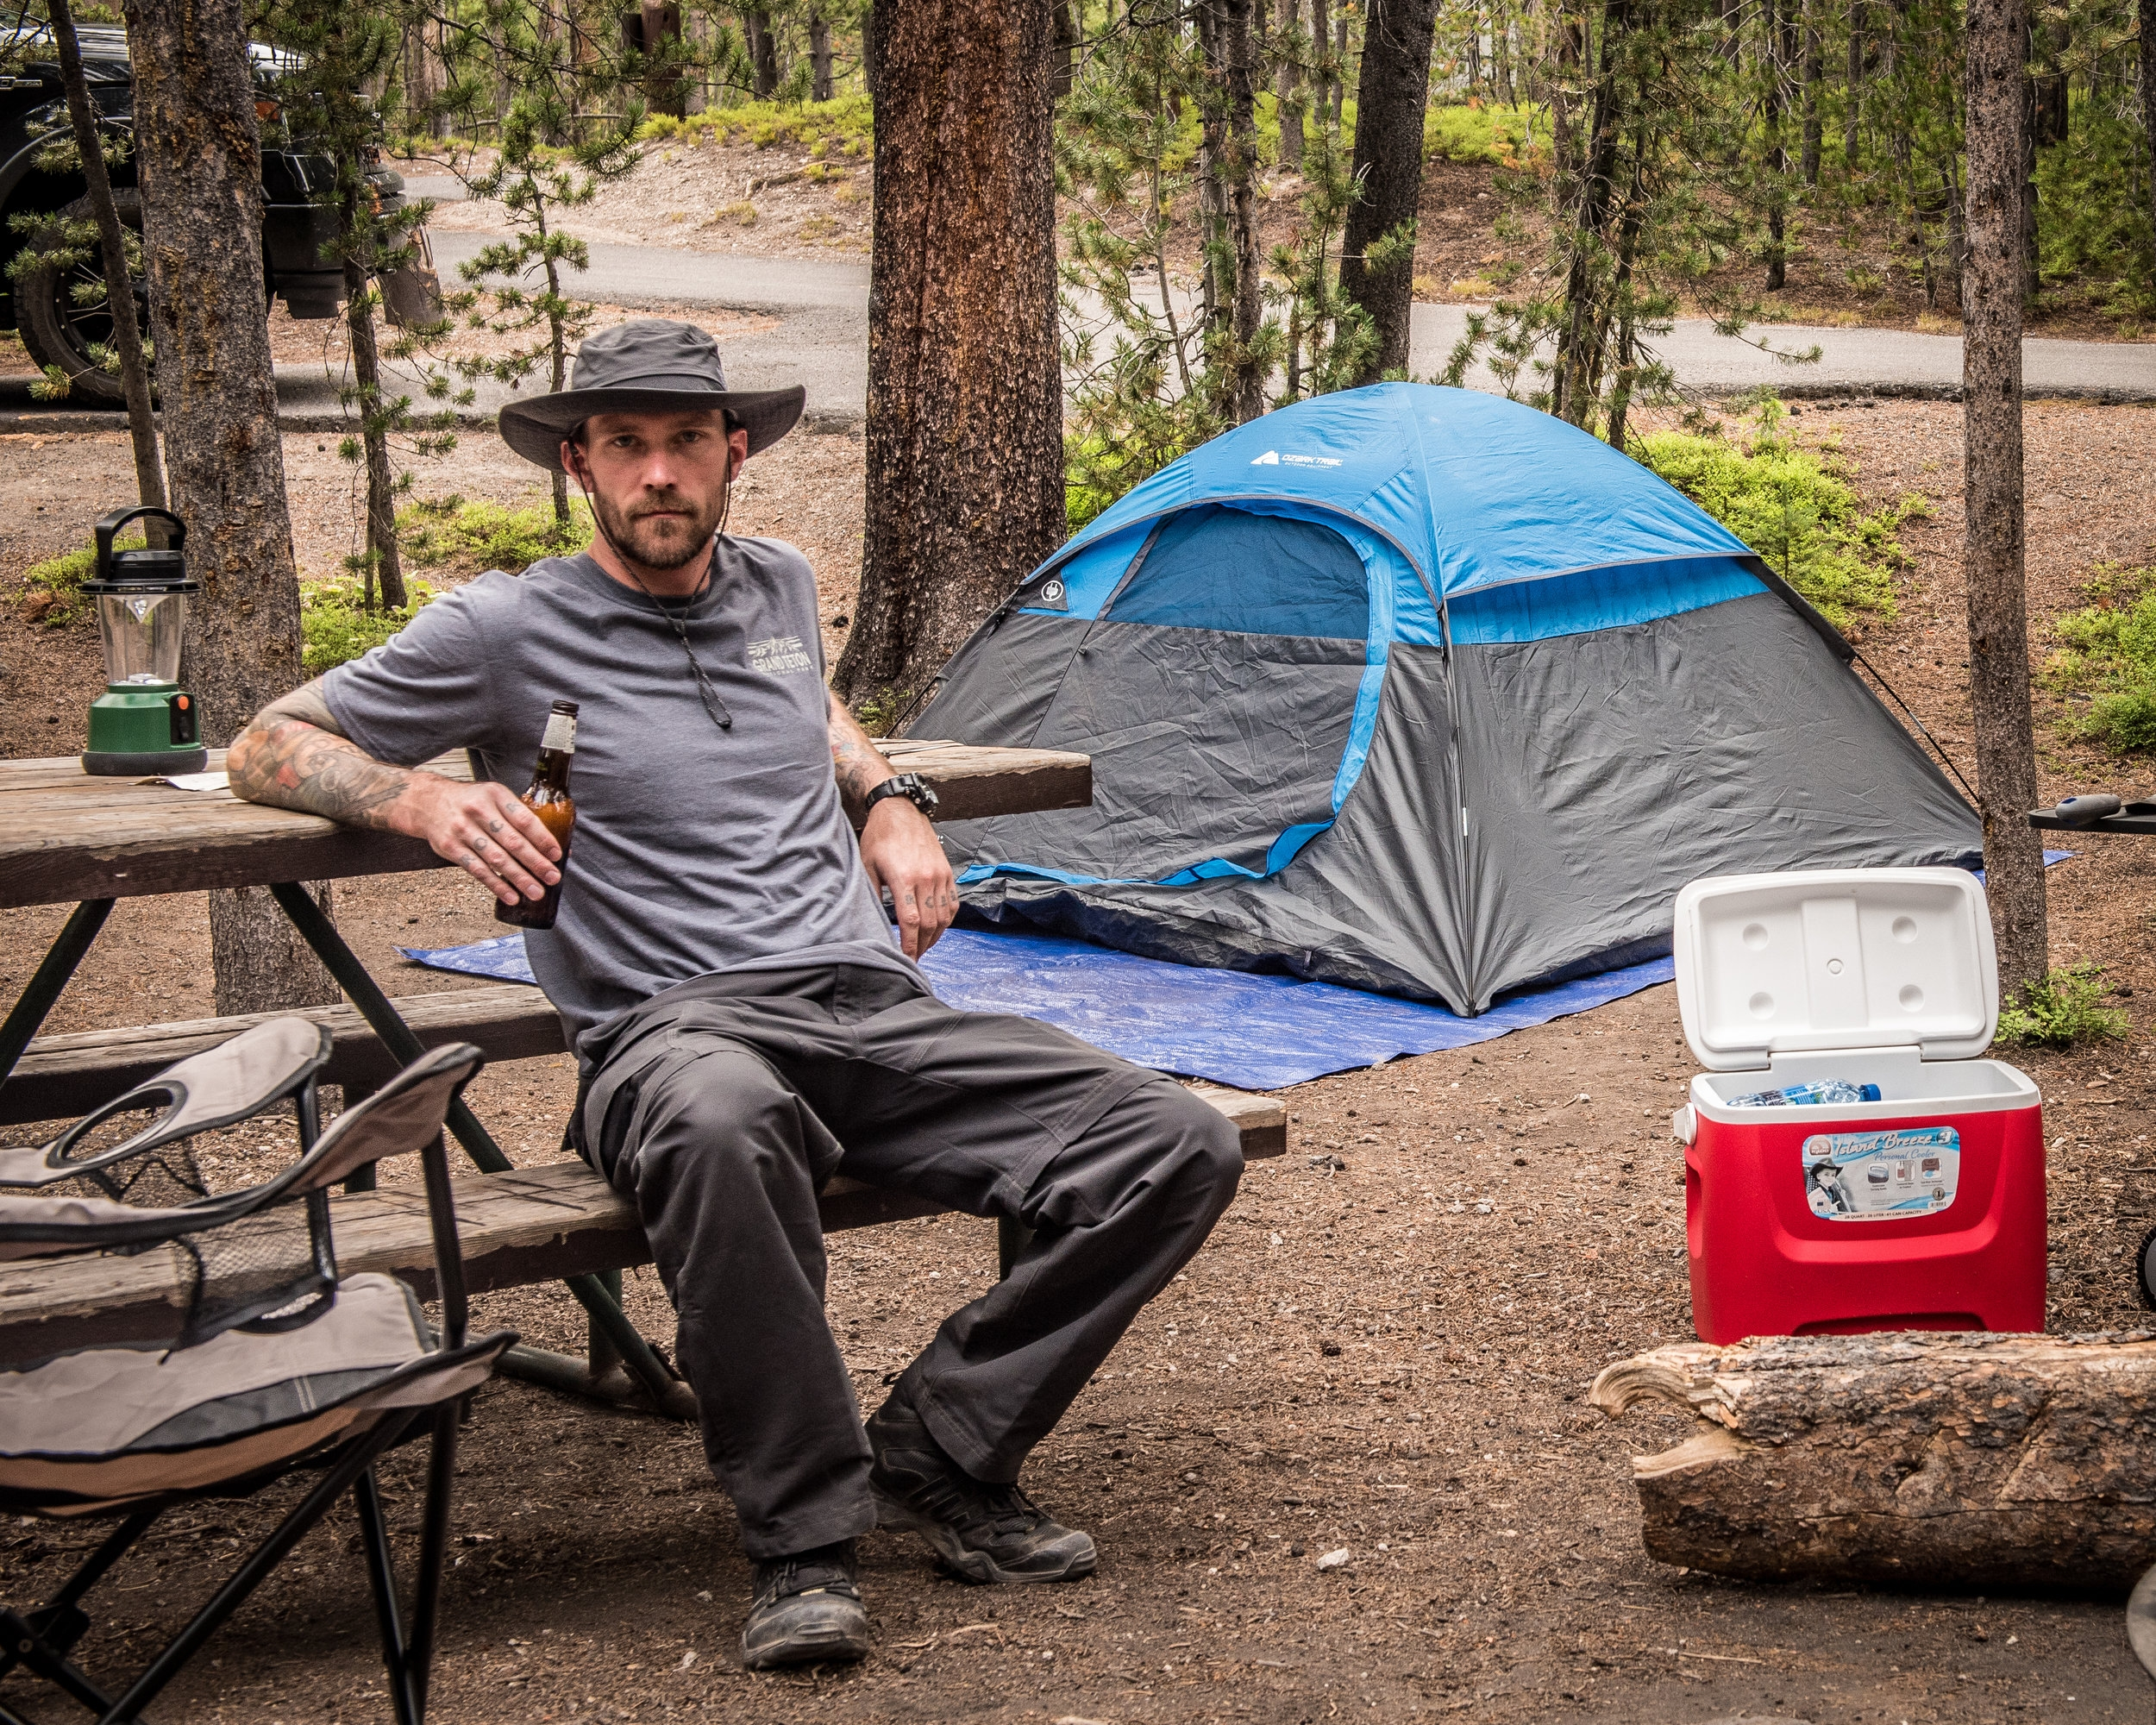 Taking in the moment at a campsite in Yellowstone National Park.